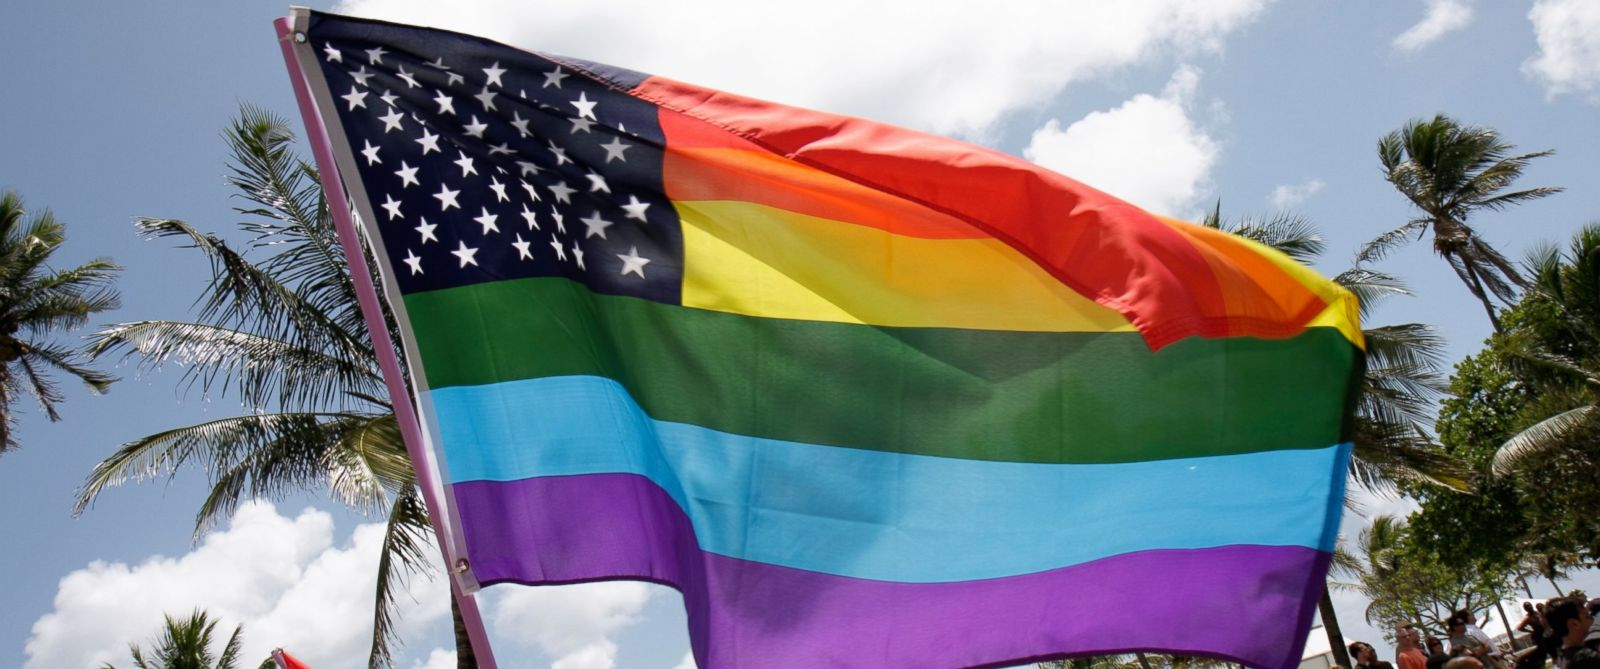 A rainbow American flag is seen here.